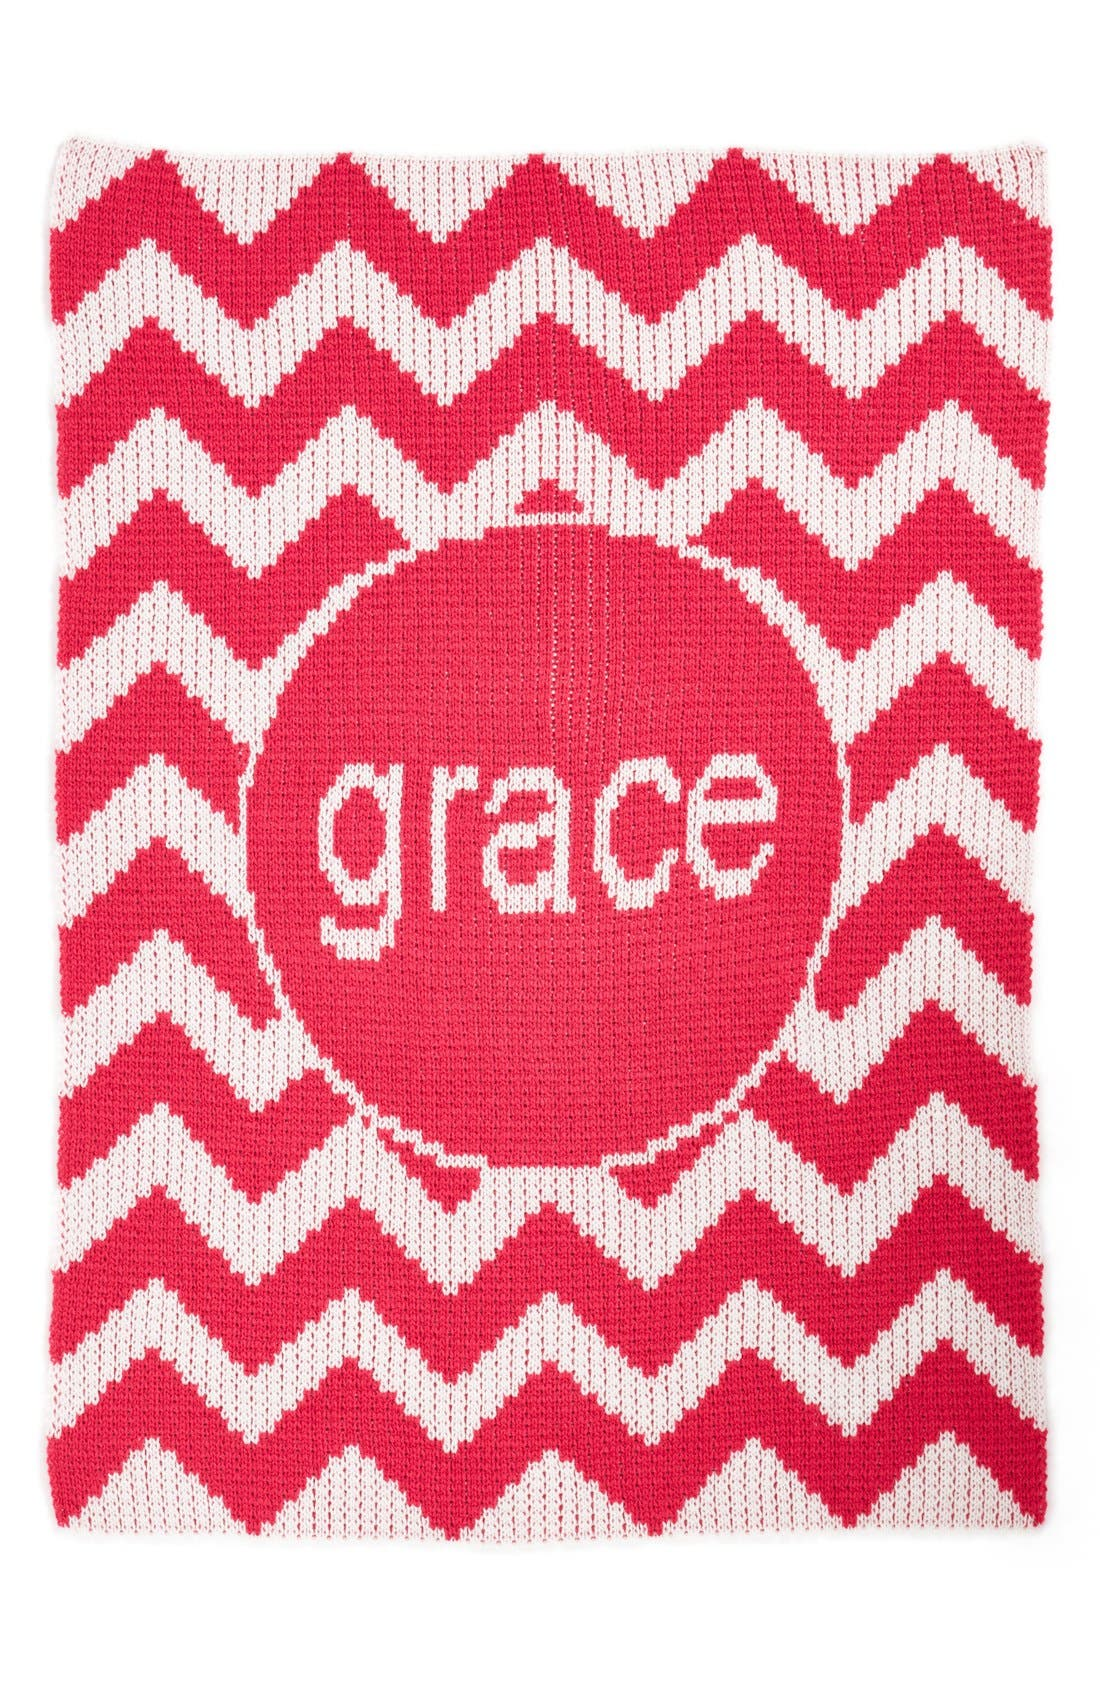 'Chevron - Small' Personalized Blanket,                             Main thumbnail 1, color,                             Hot Pink/ White